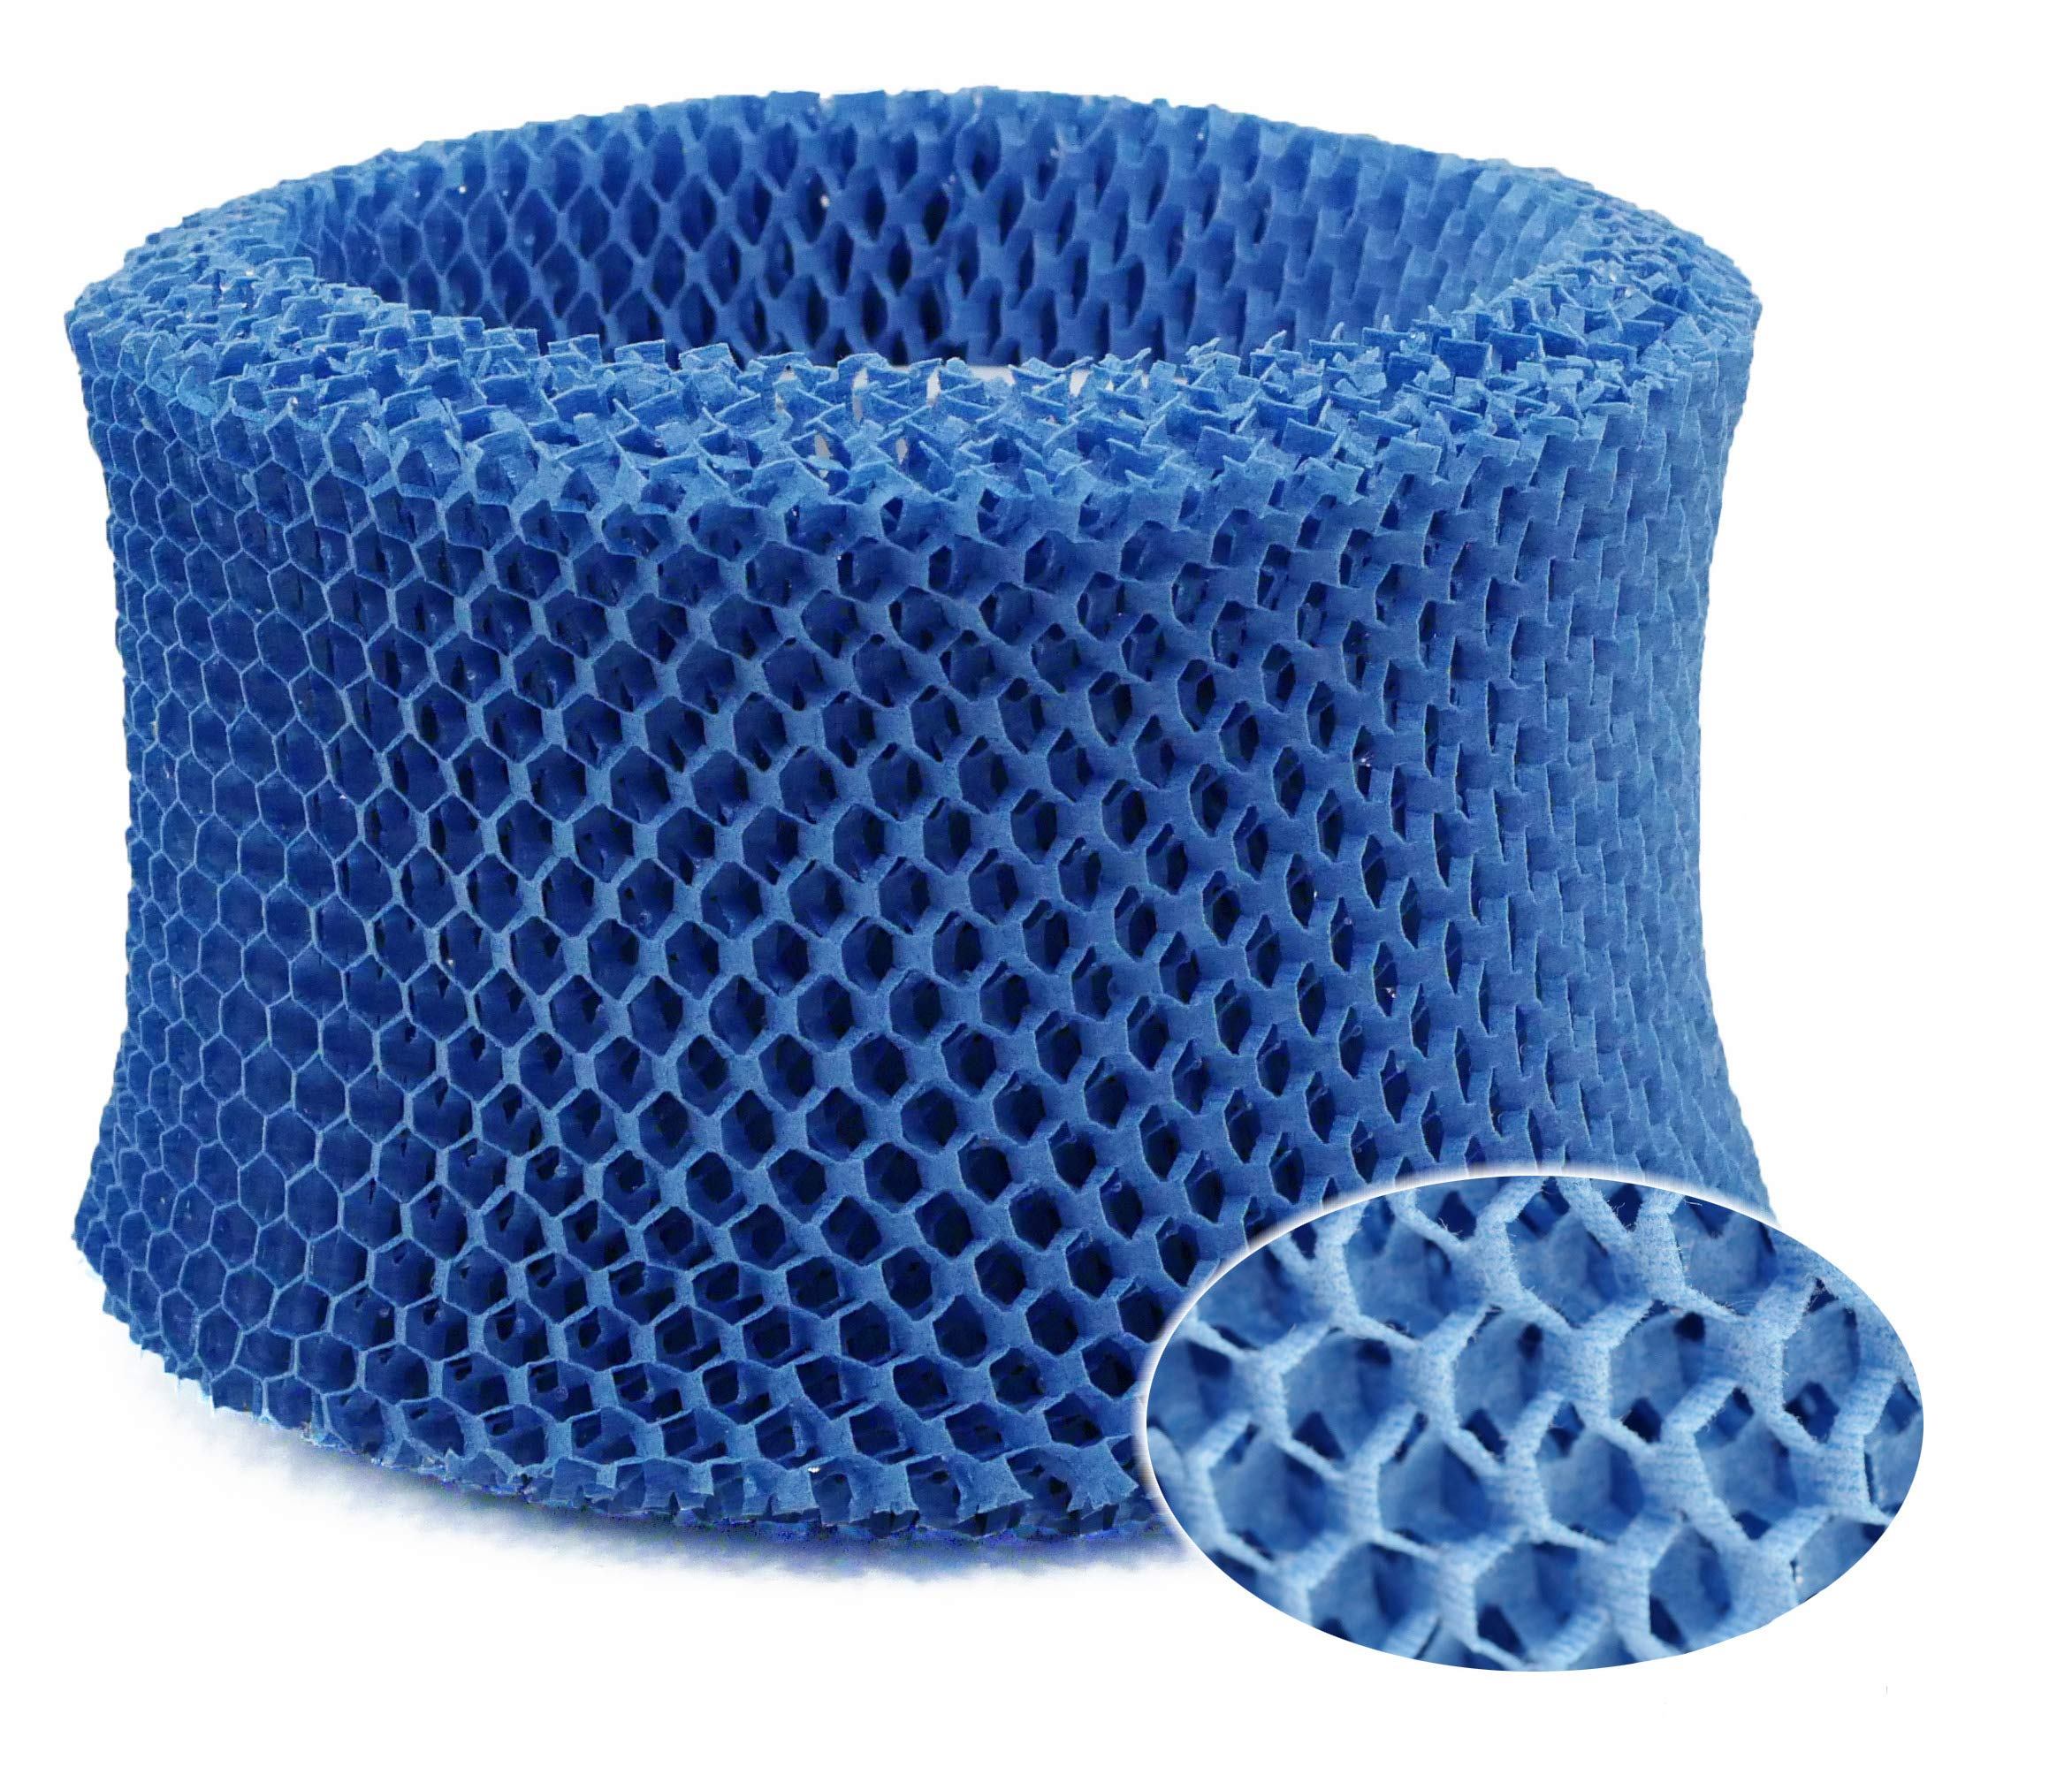 Humidifier Wick Filter Extra Long-Life Replaces Holmes WF2 Kaz ReliOn HW500 HAC-504 HCM350 =REUSABLE= by Natural-Breeze